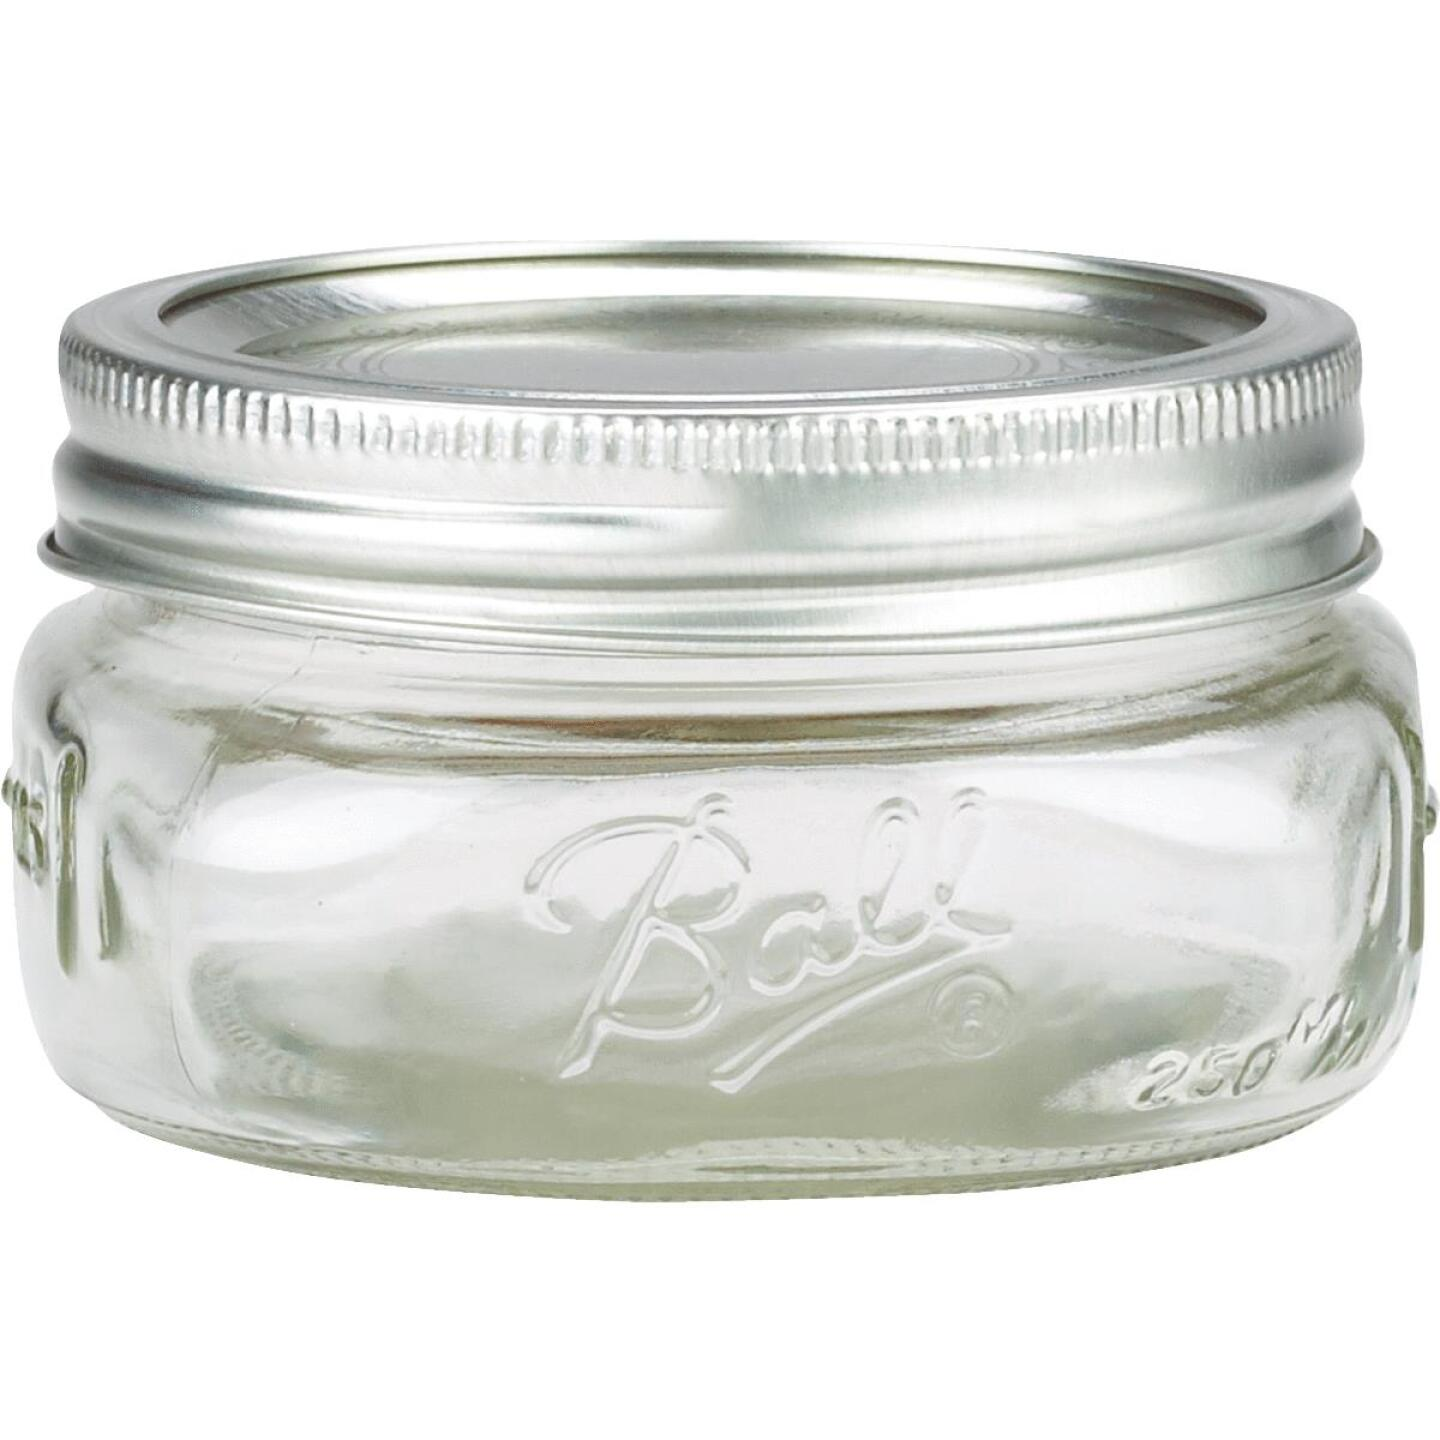 Ball Collection Elite 1/2 Pint Wide Mouth Mason Canning Jar (4-Count) Image 2